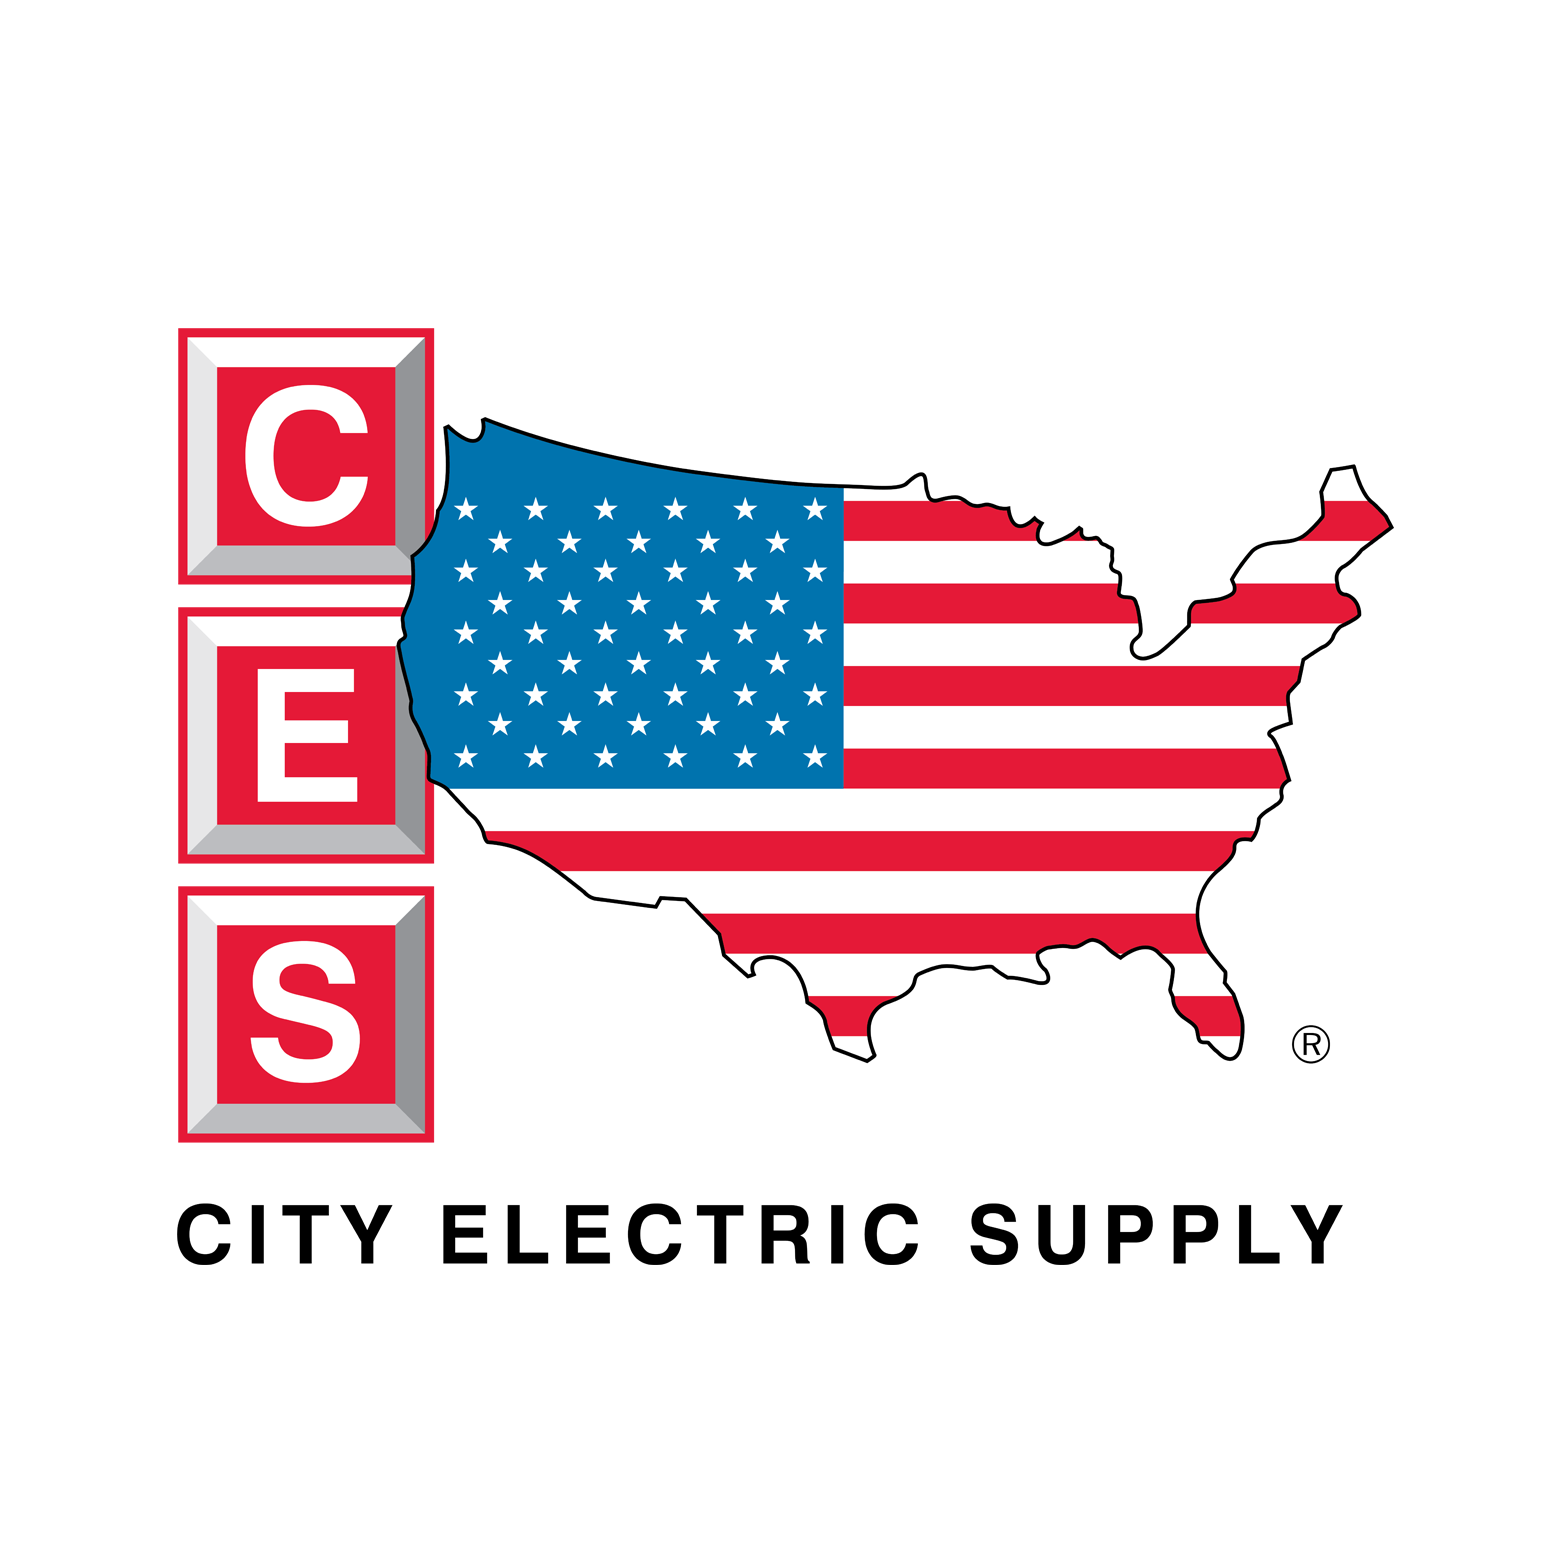 City Electric Supply St. Petersburg